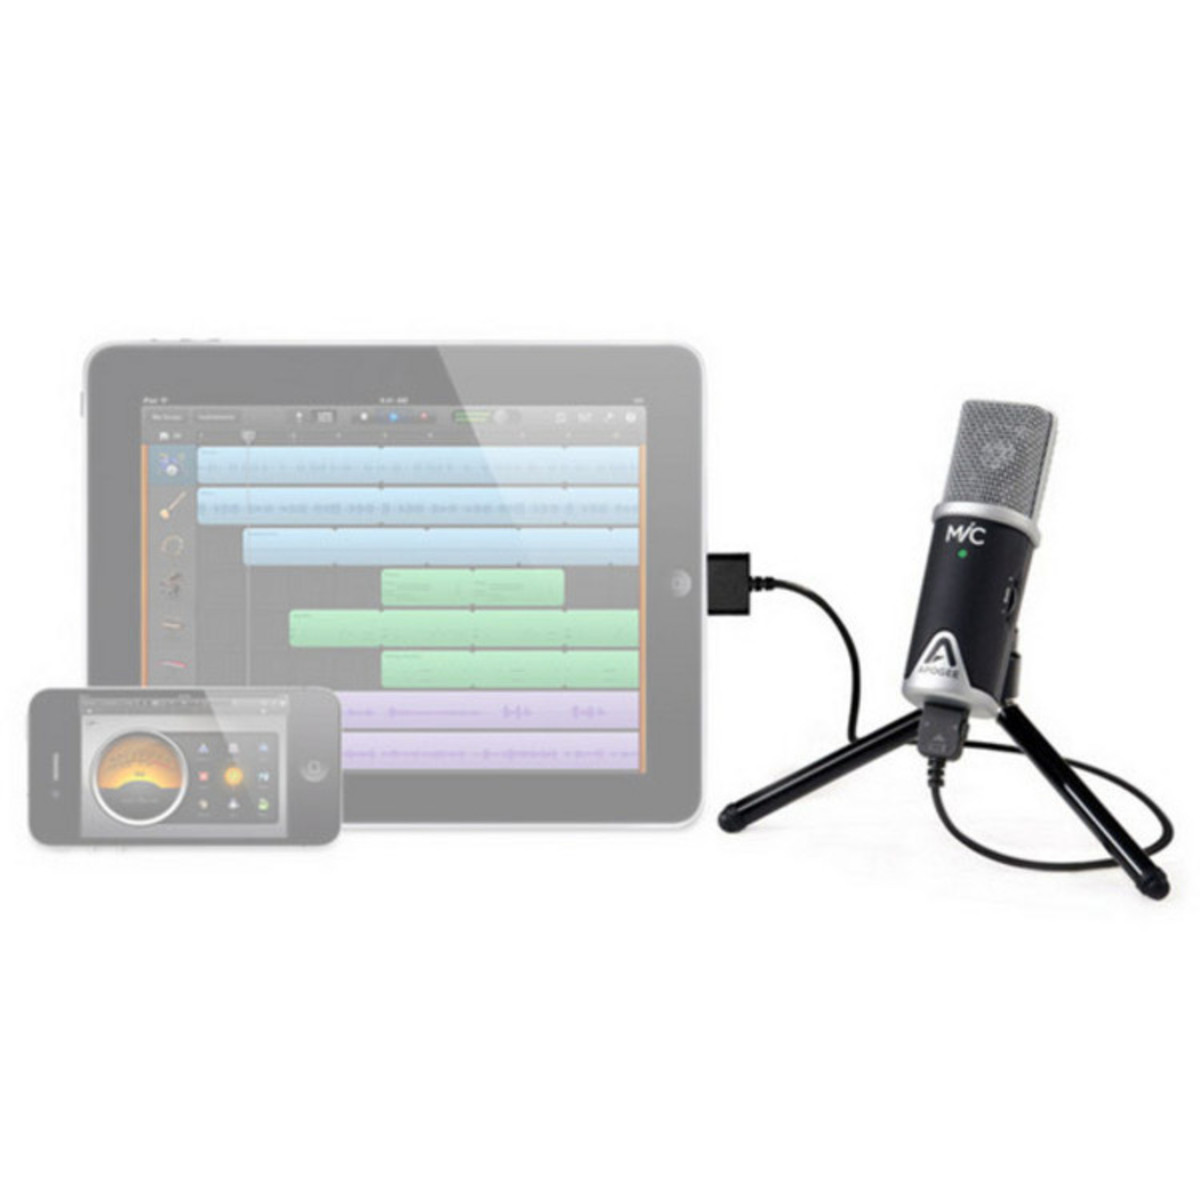 apogee mic usb microphone for ipad iphone and mac at. Black Bedroom Furniture Sets. Home Design Ideas